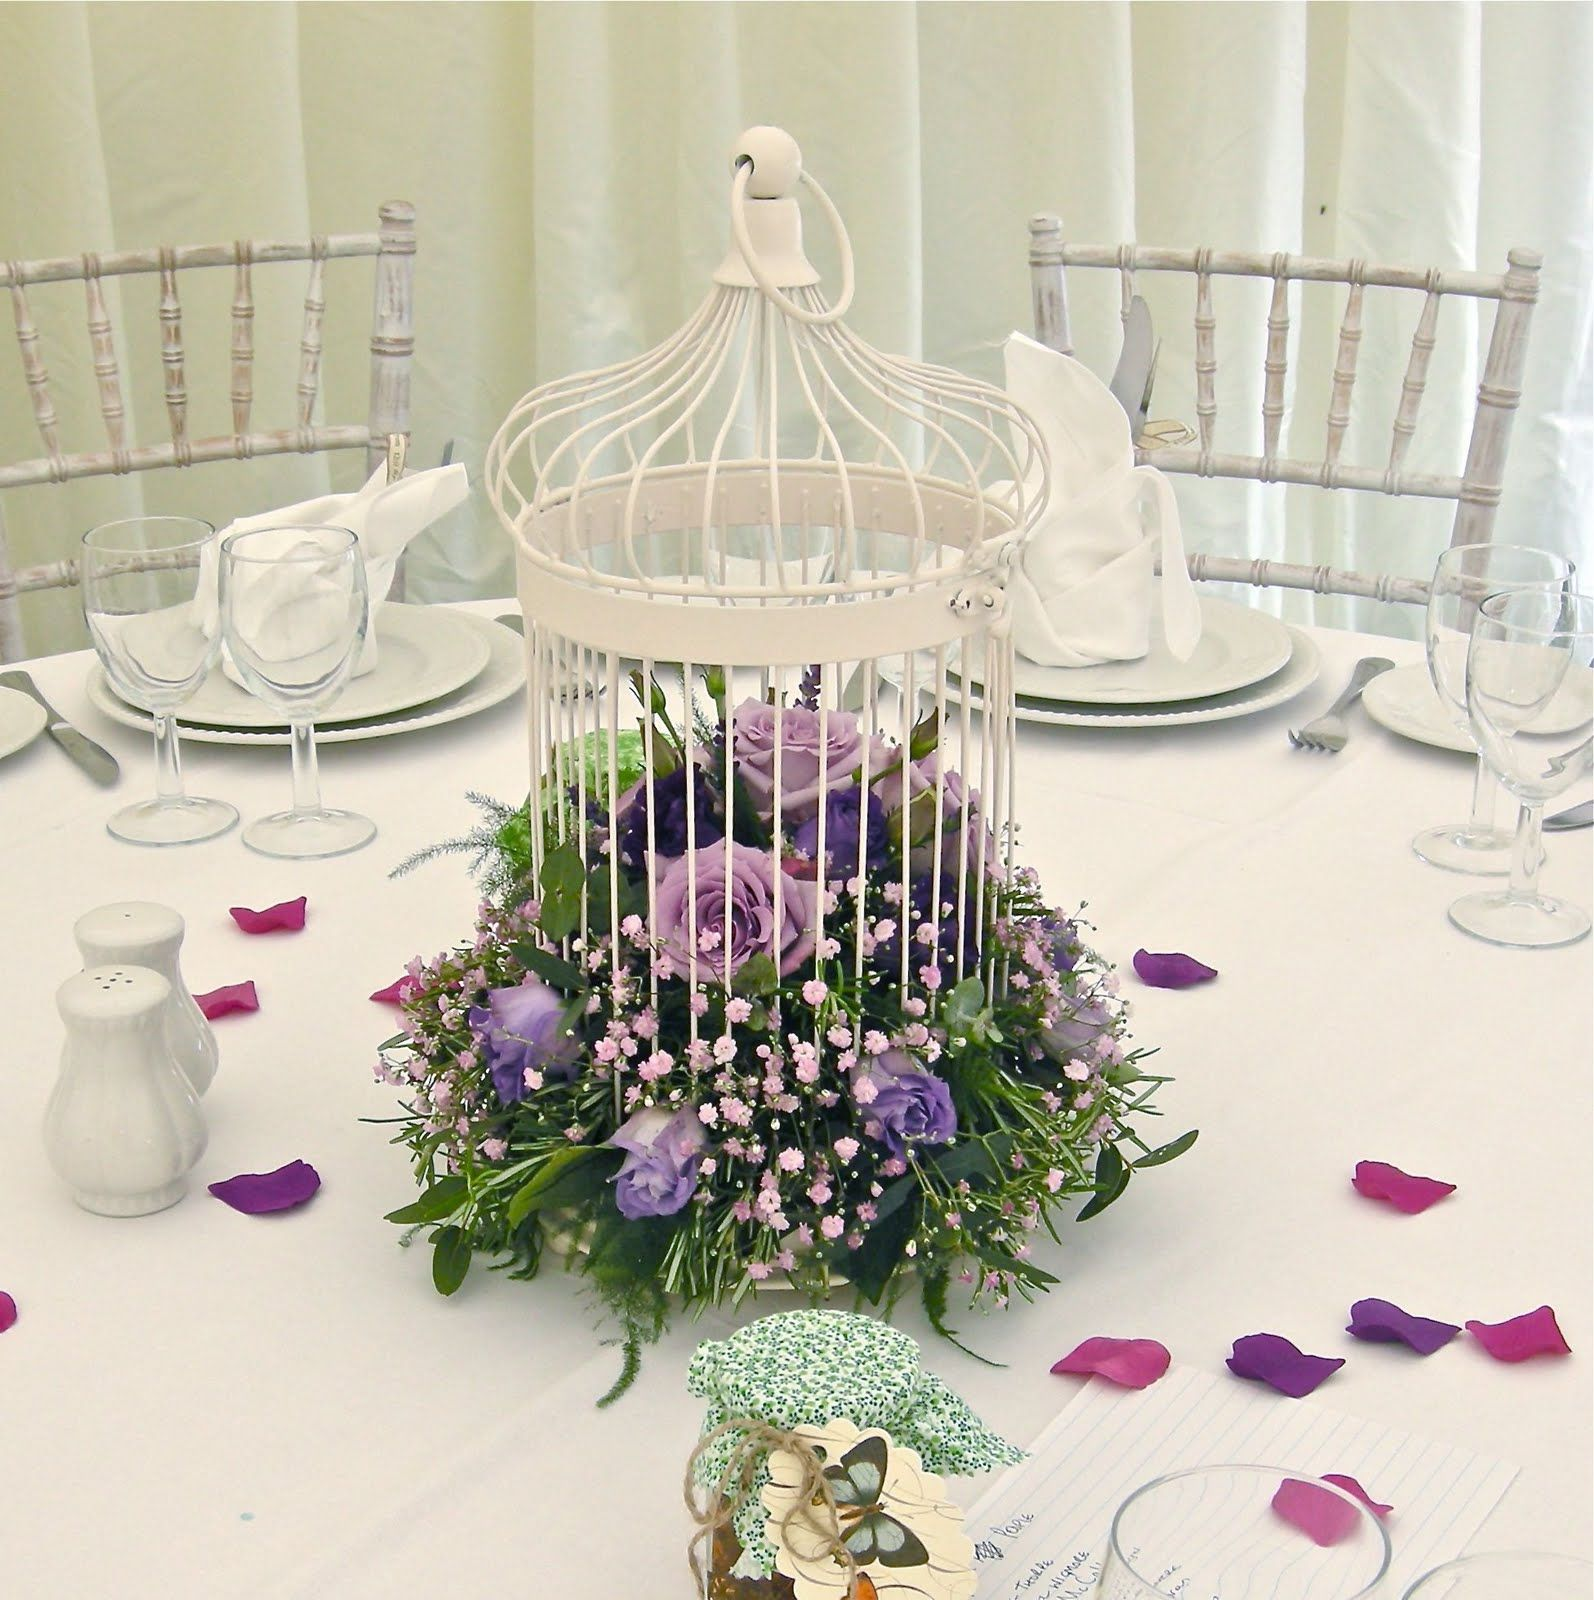 Vintage bird cage table centre pieces made with silk flowers | 50th ...